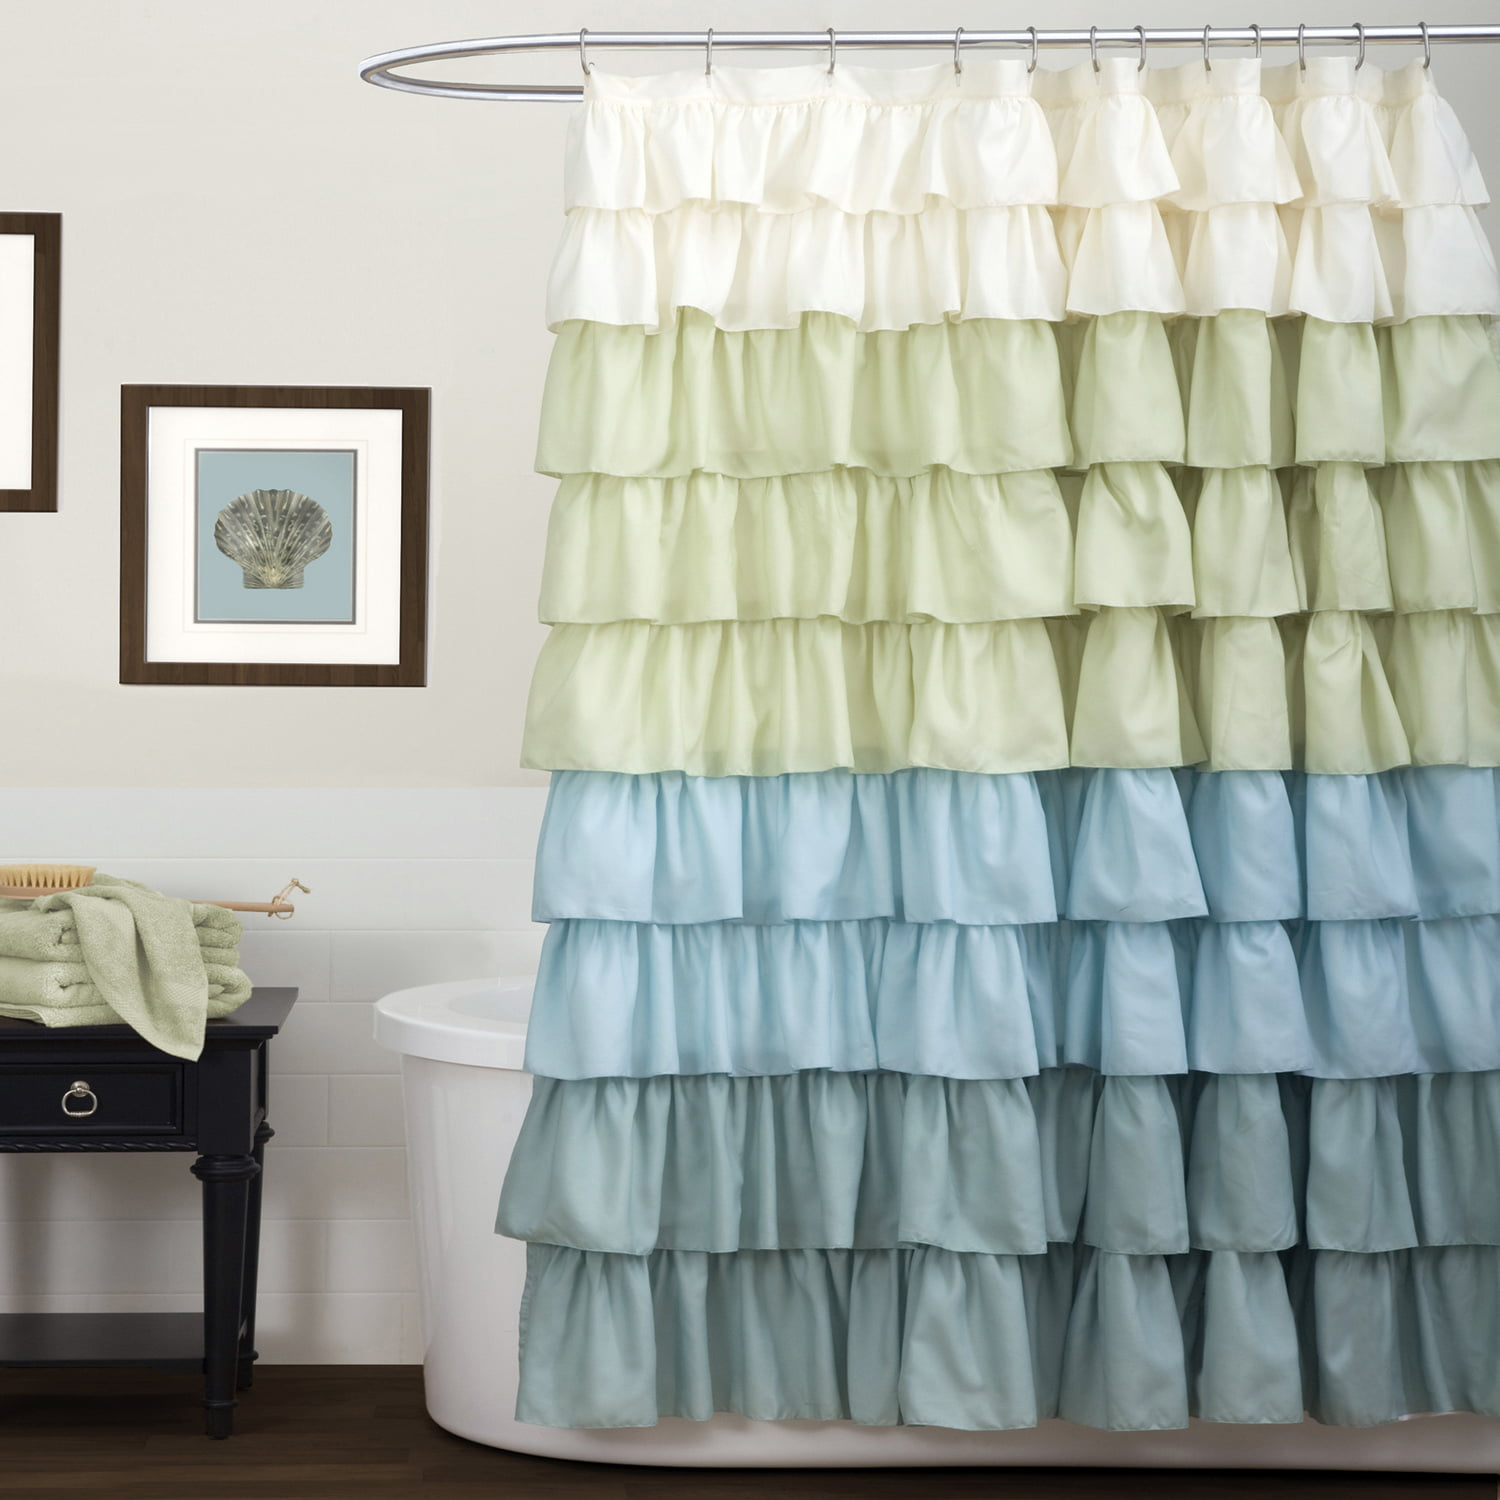 Ruffle Shower Curtain - Walmart.com